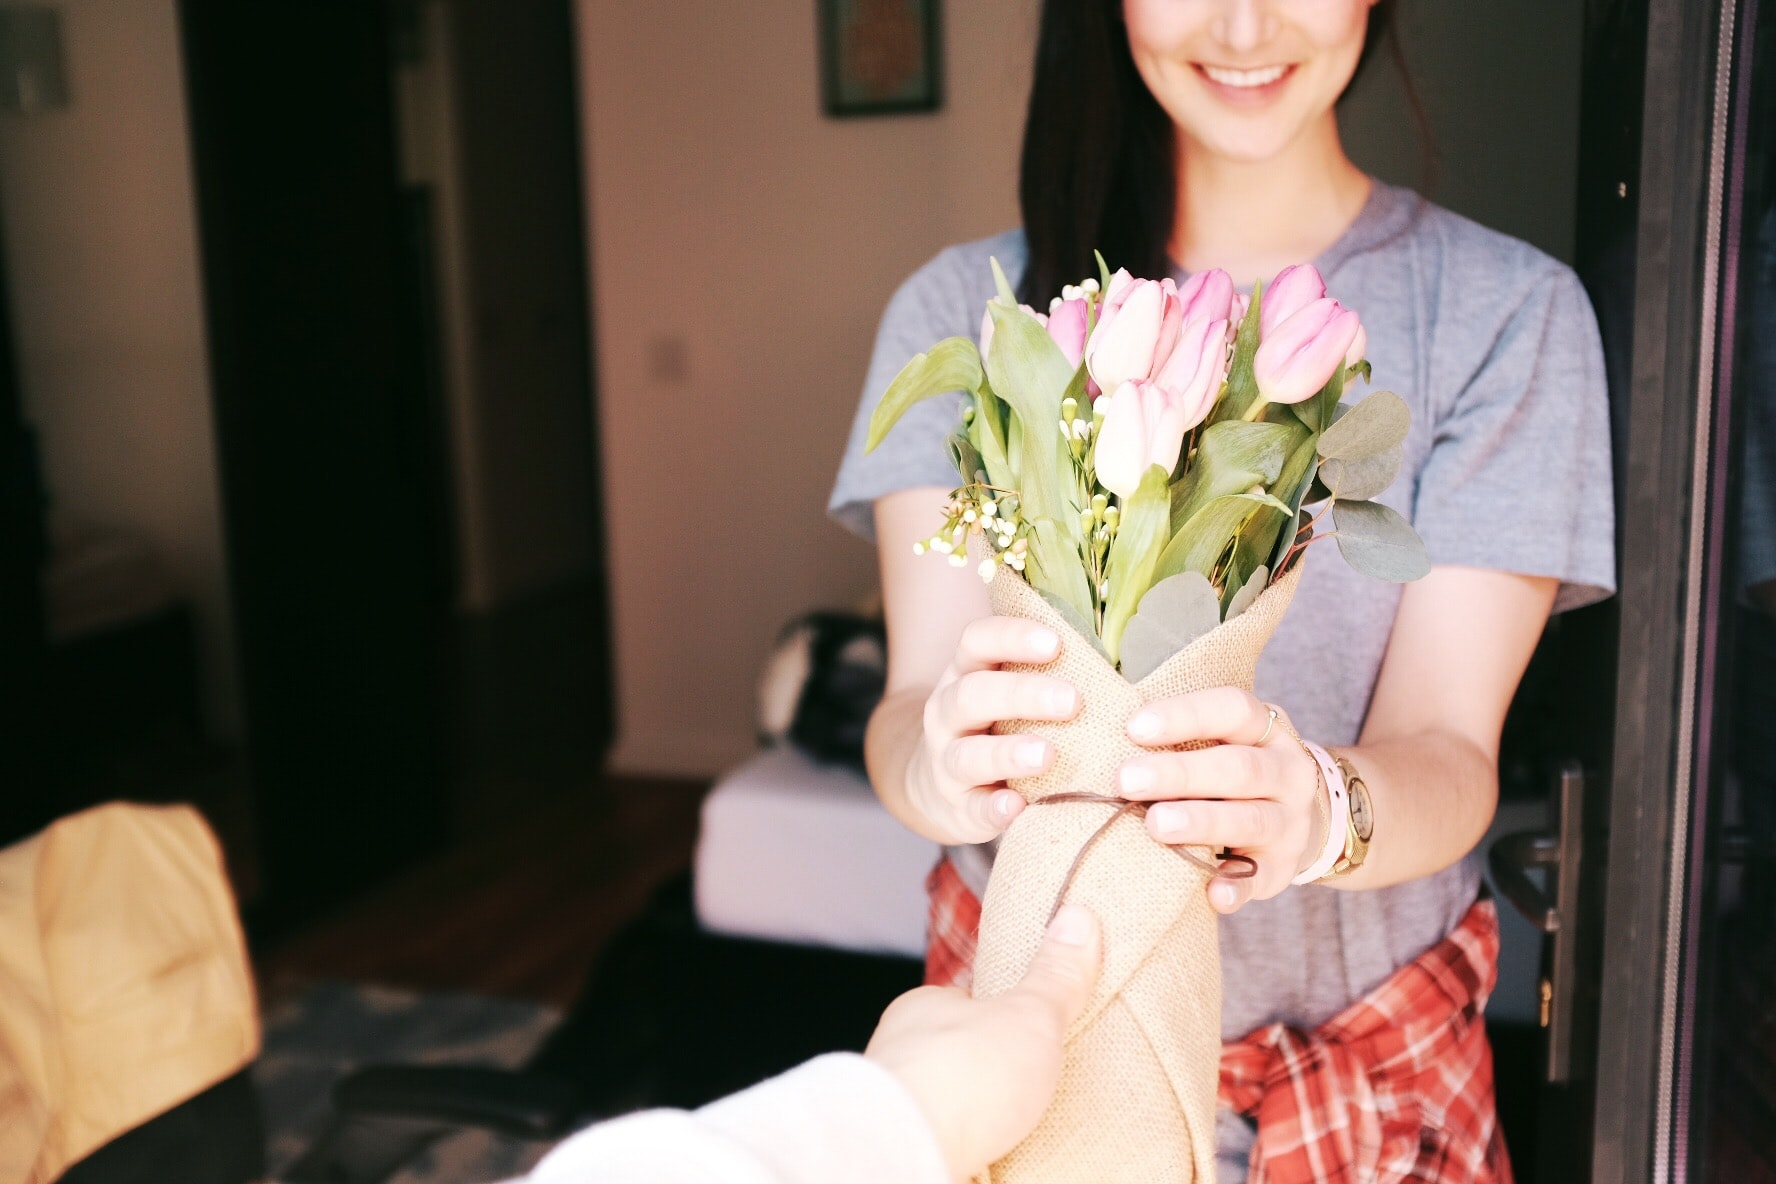 Man hands a bouquet of flowers to smiling woman